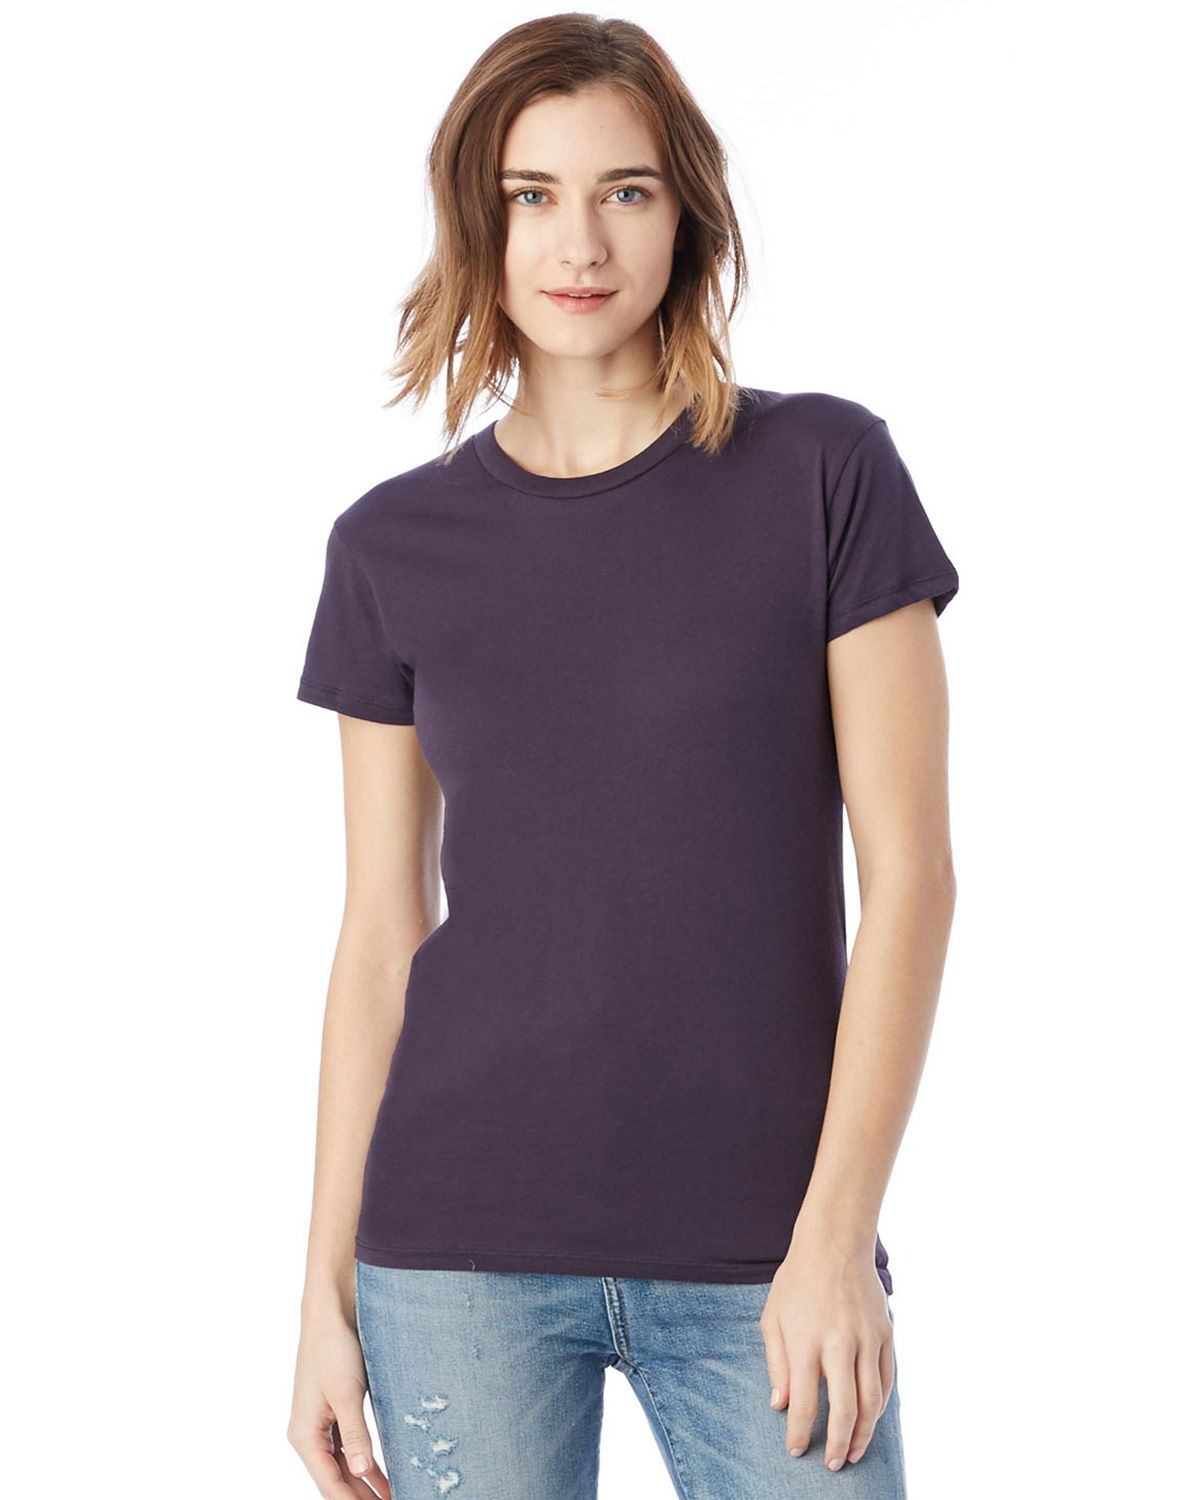 99e745656 Buy Alternative AA1072 Ladies Tear-Away Basic Crew